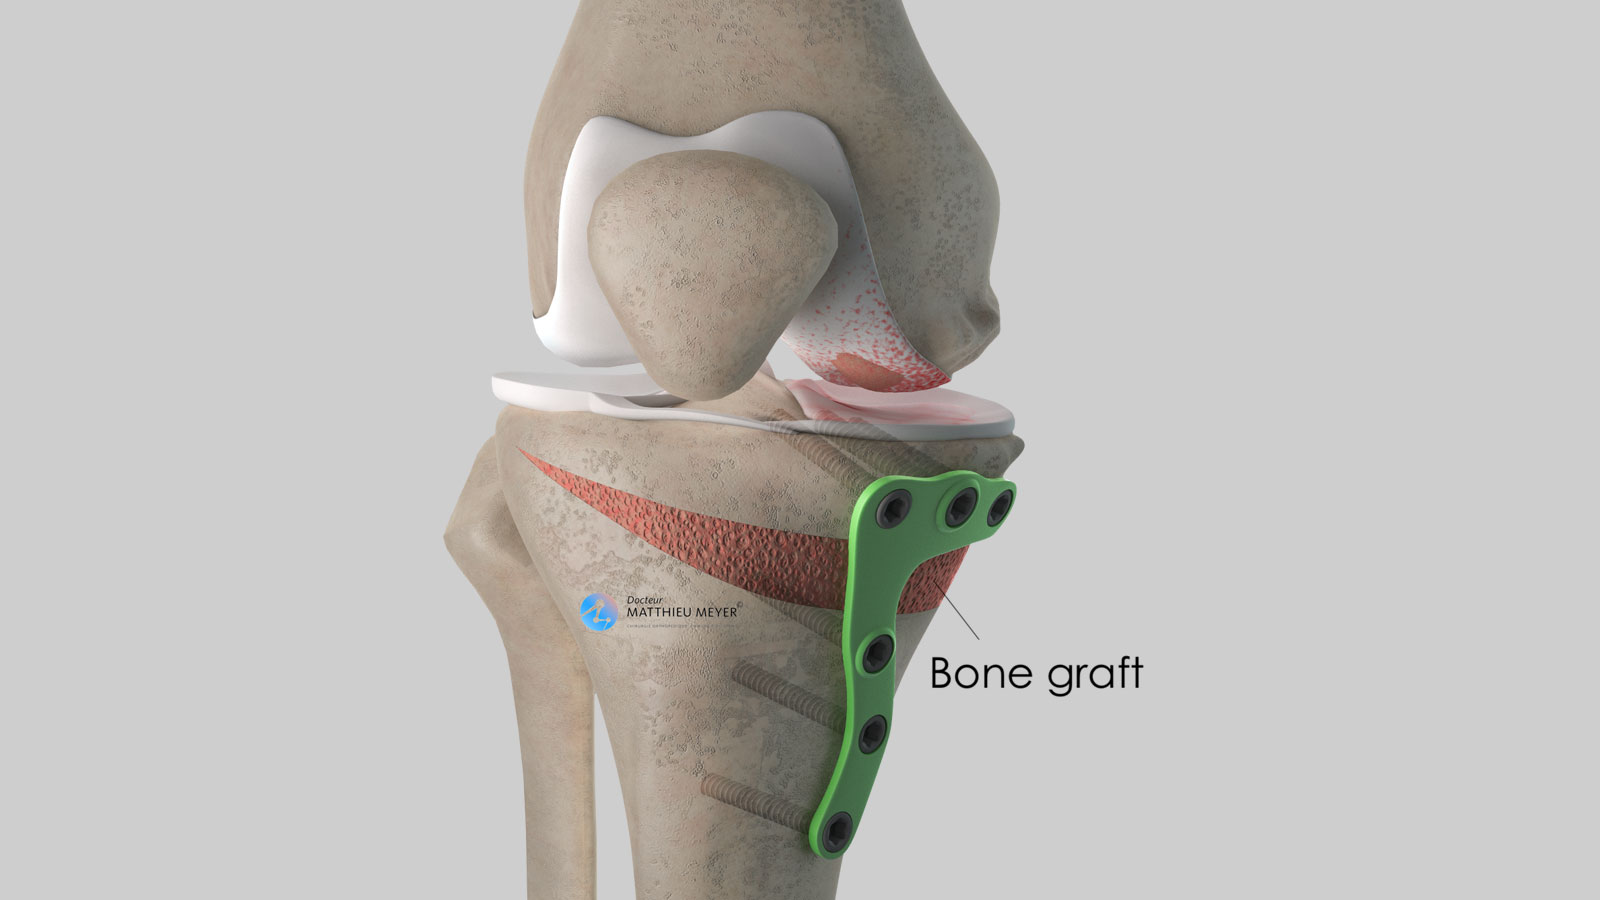 Filling with bone graft and plate osteosynthesis